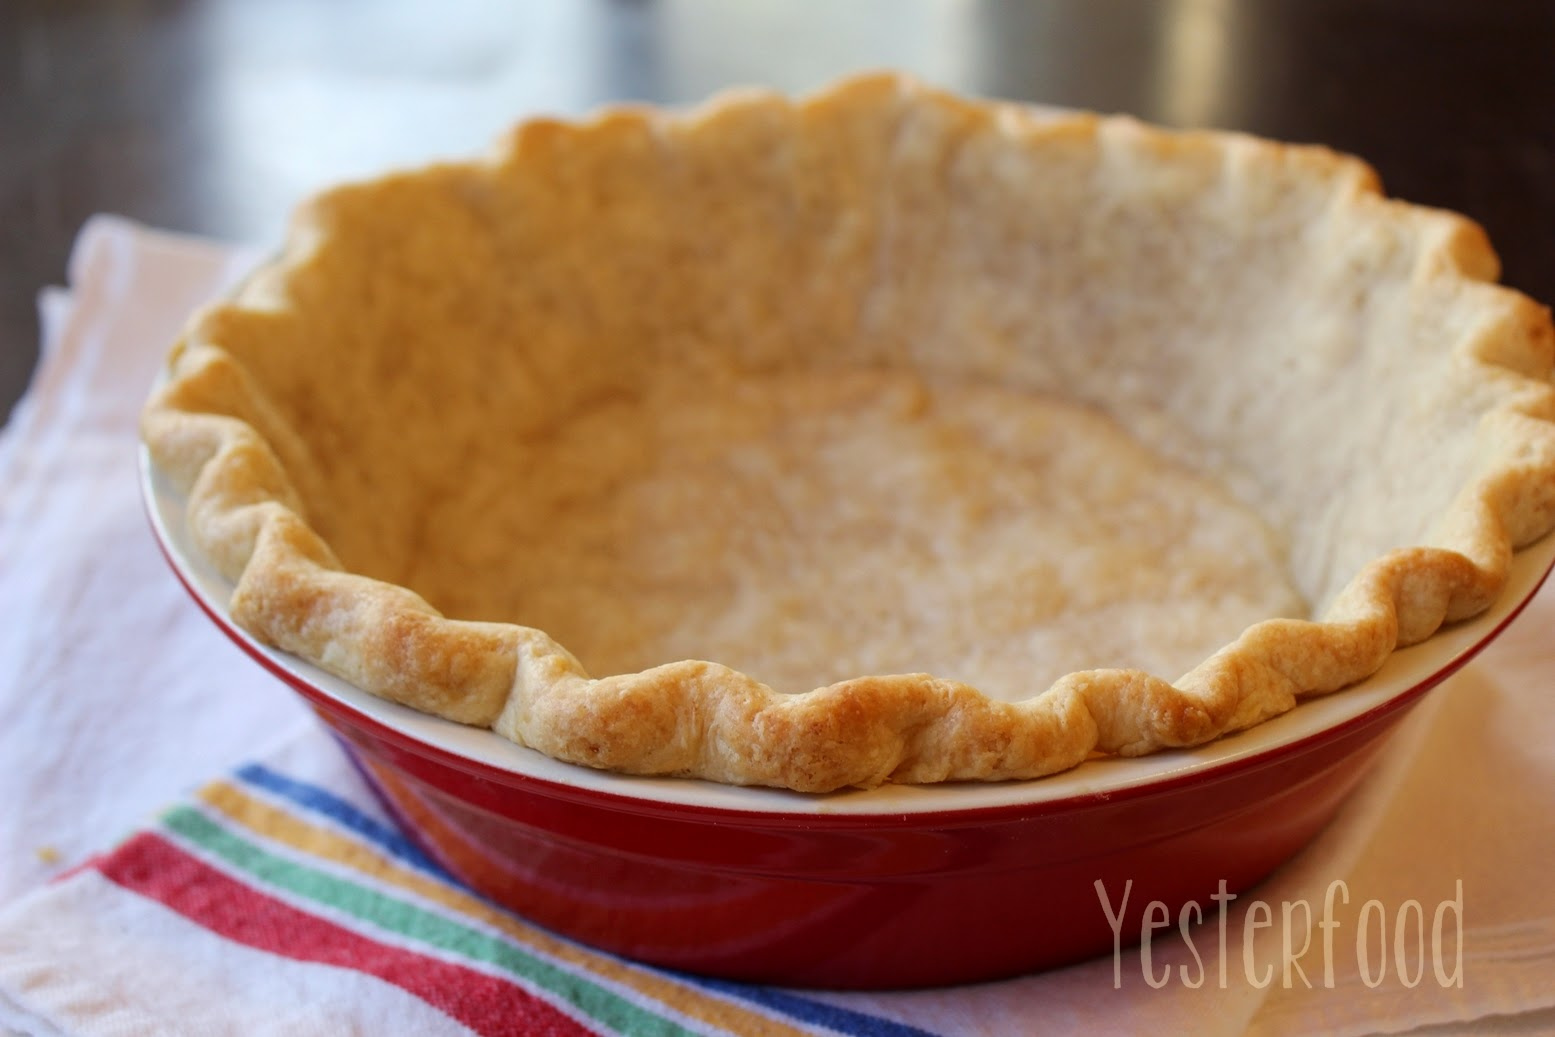 ... this post for more information on making an all-coconut oil pie crust